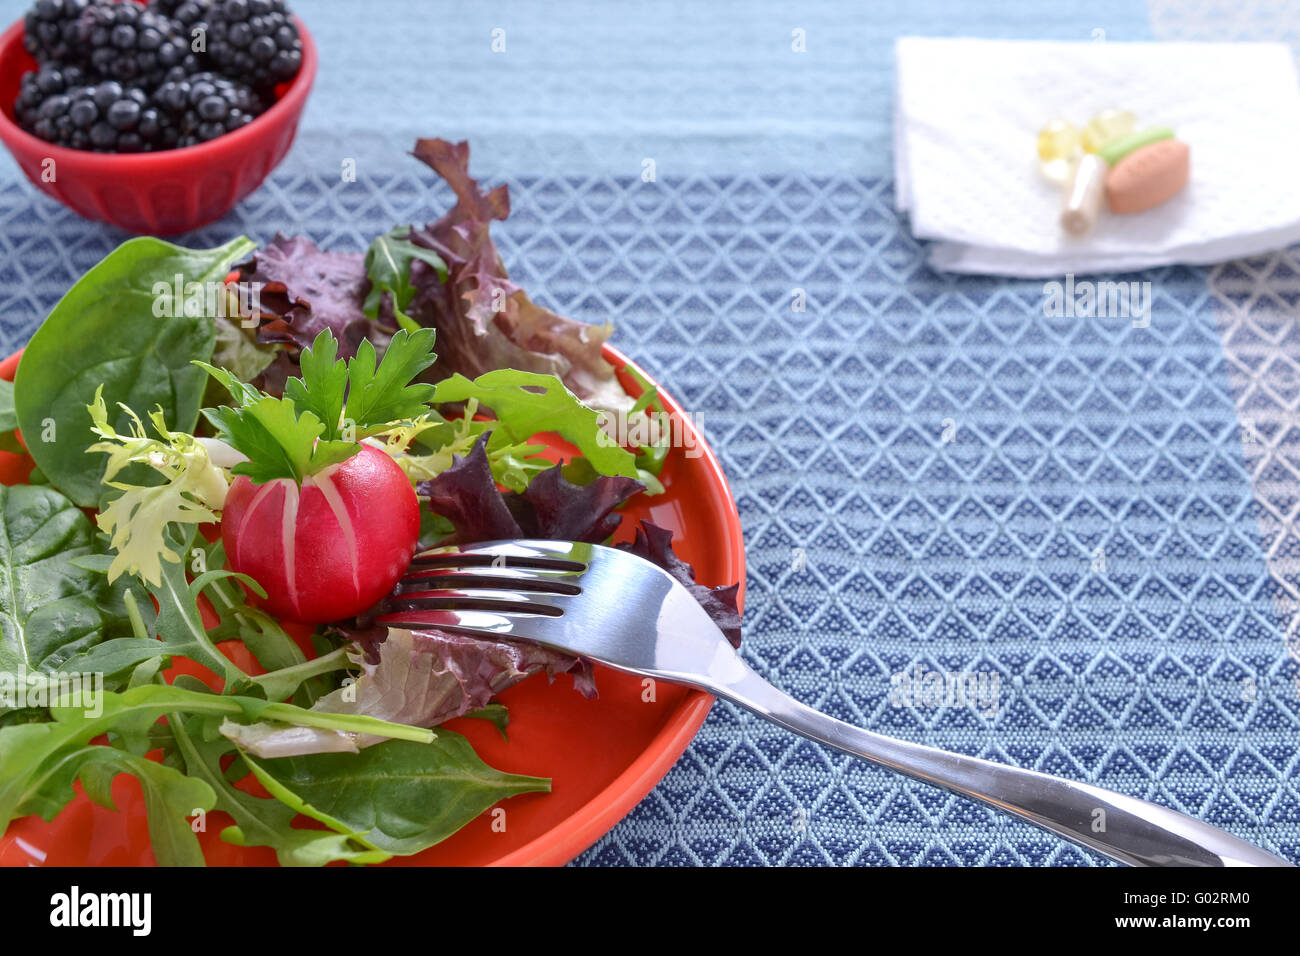 Spring mix salad, blackberries, and antioxidant supplements on blue table cloth Stock Photo